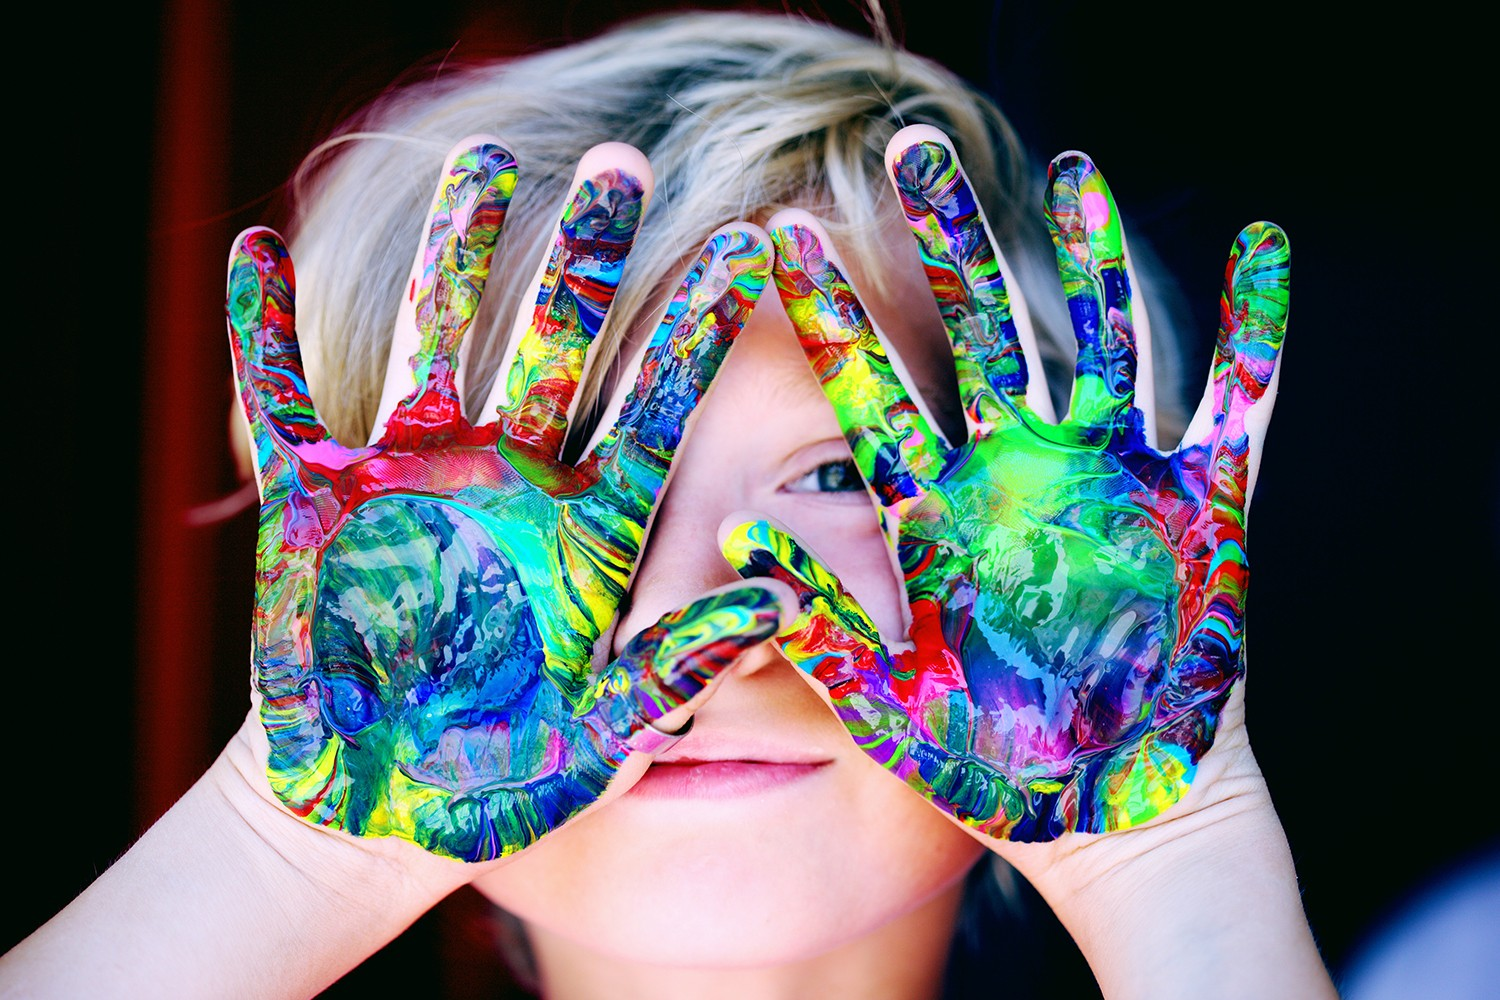 Child with ADHD hyperactivity and inattention that paints and performs a cognitive stimulation game